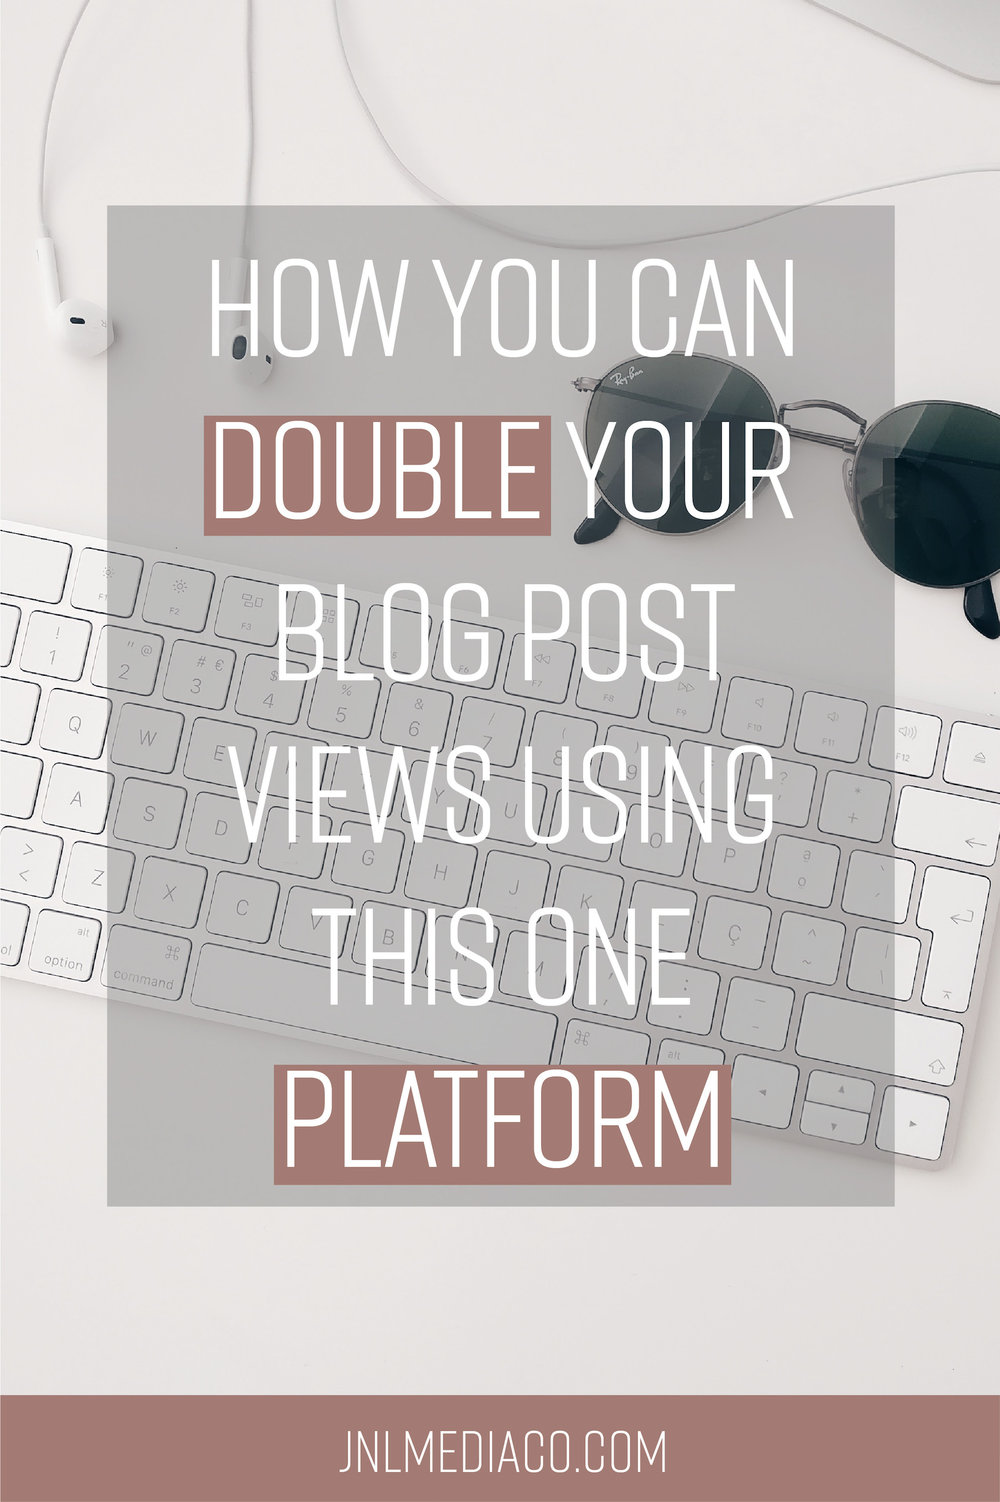 I'm here to talk about the best way to gain readership on both your new and old blog posts. I know I said you can double your blog post views in the title but you honestly can 10X them, depending on how effectively you use the platform.